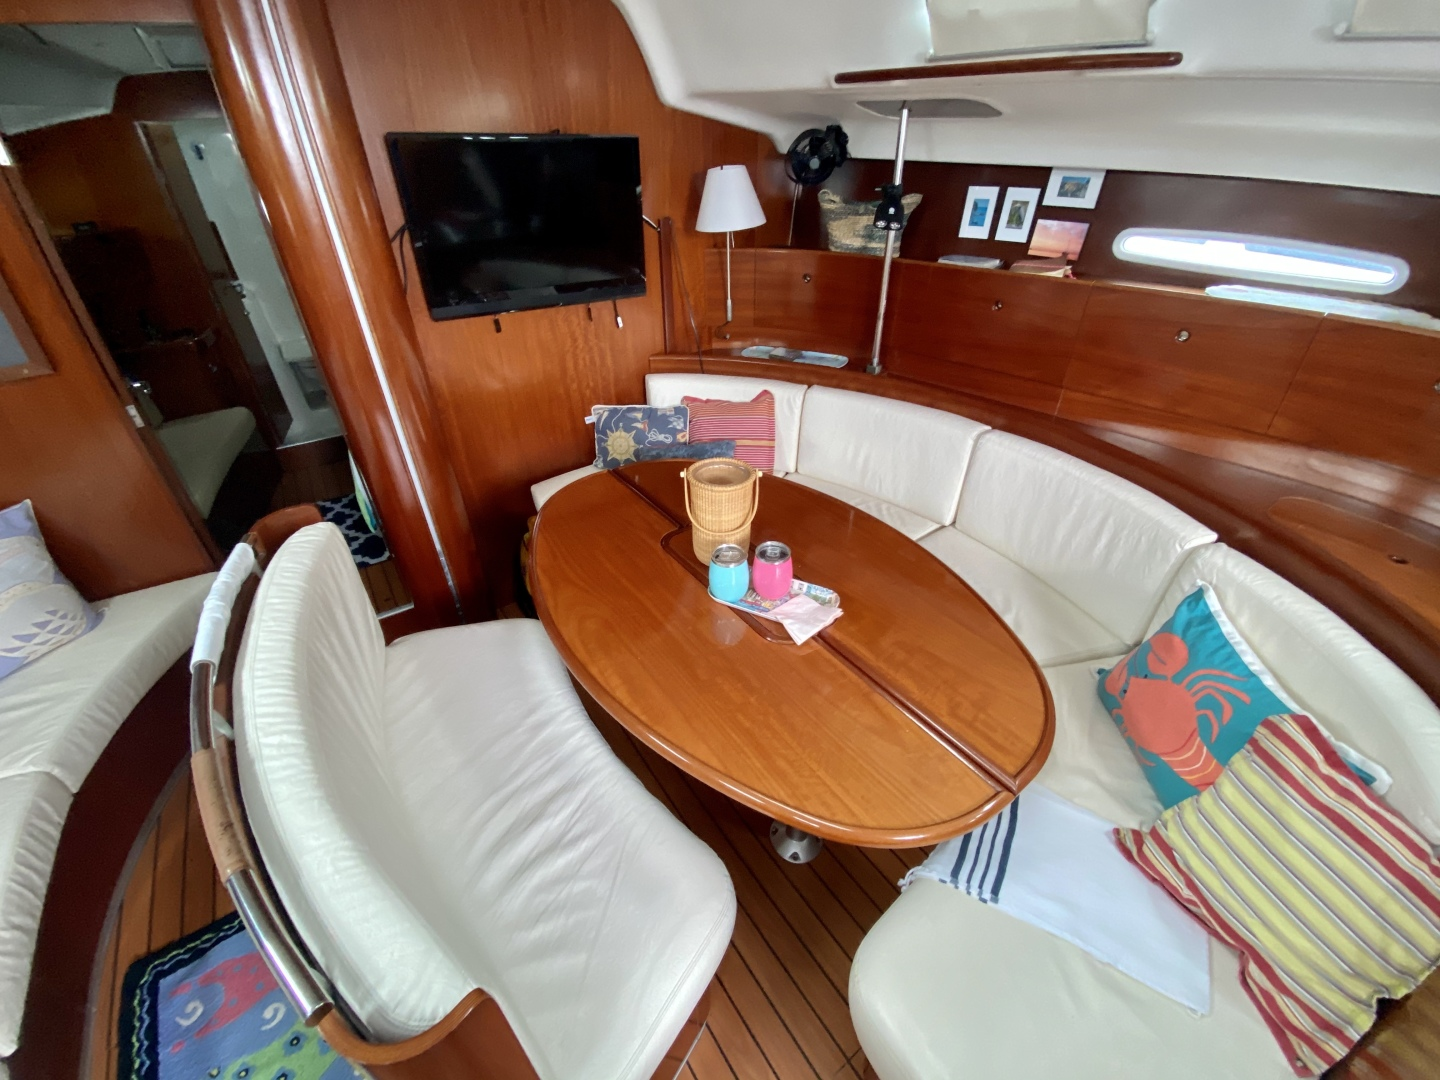 Beneteau-First 47.7 2004 -Portsmouth-Rhode Island-United States-Salon Table-1551501 | Thumbnail